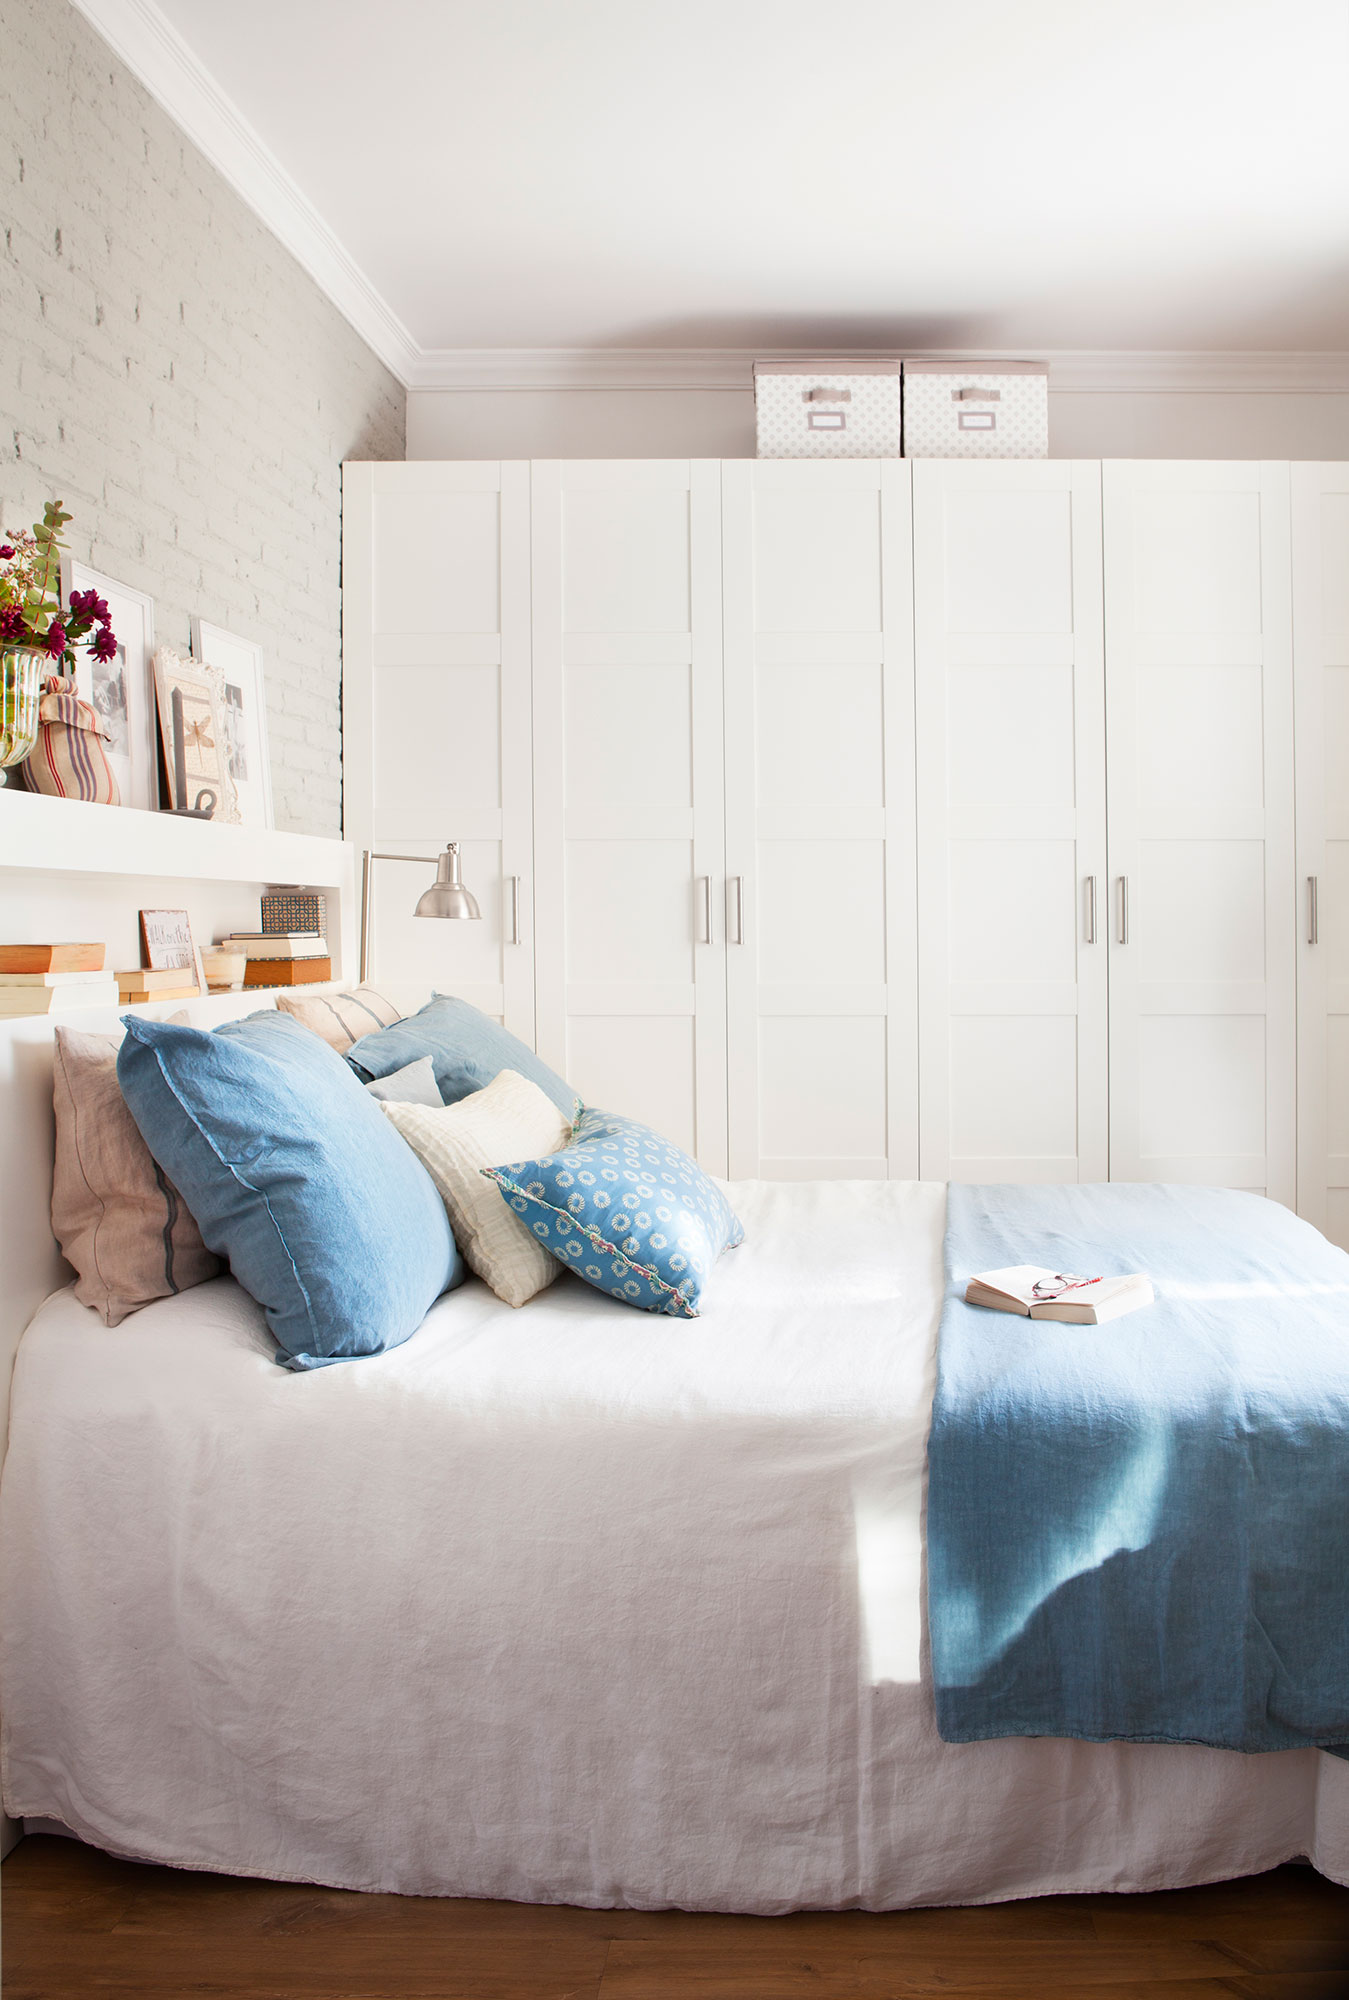 Compartir piso 10 ideas low cost para decorar tu dormitorio for Cuarto dormitorio